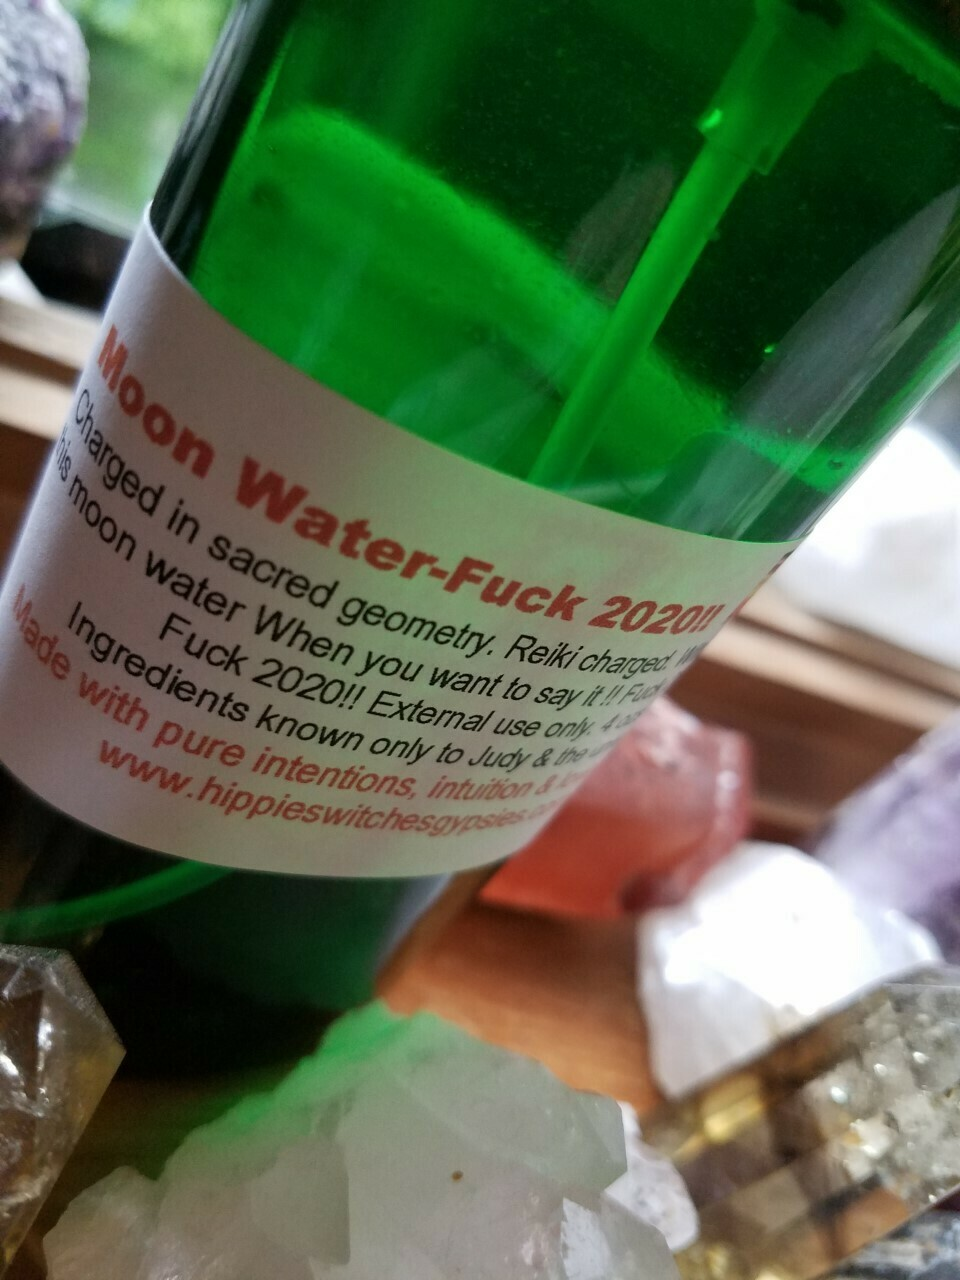 Moon Water-Fuck 2020!!! - 4oz